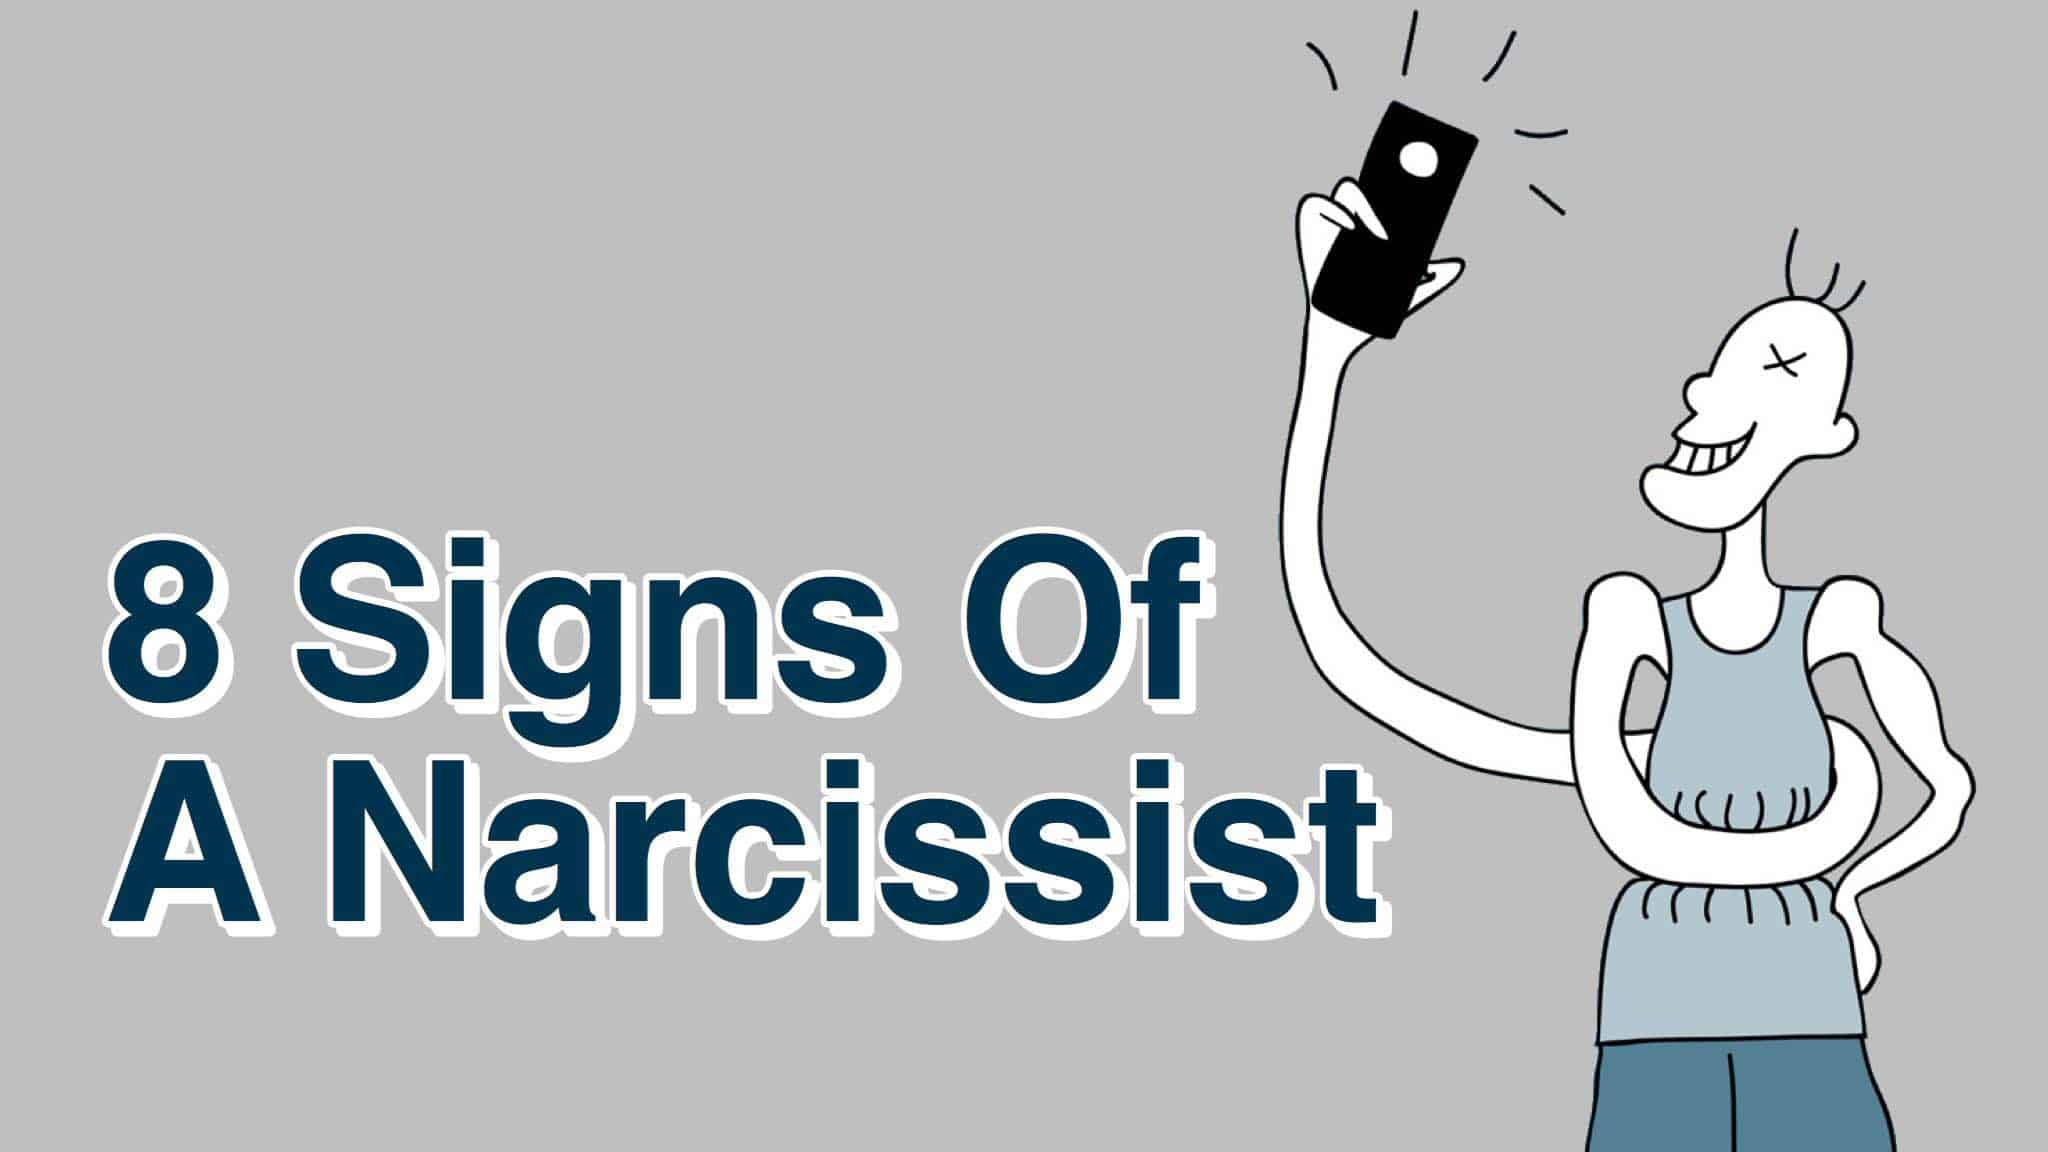 8 Signs Of A Narcissist